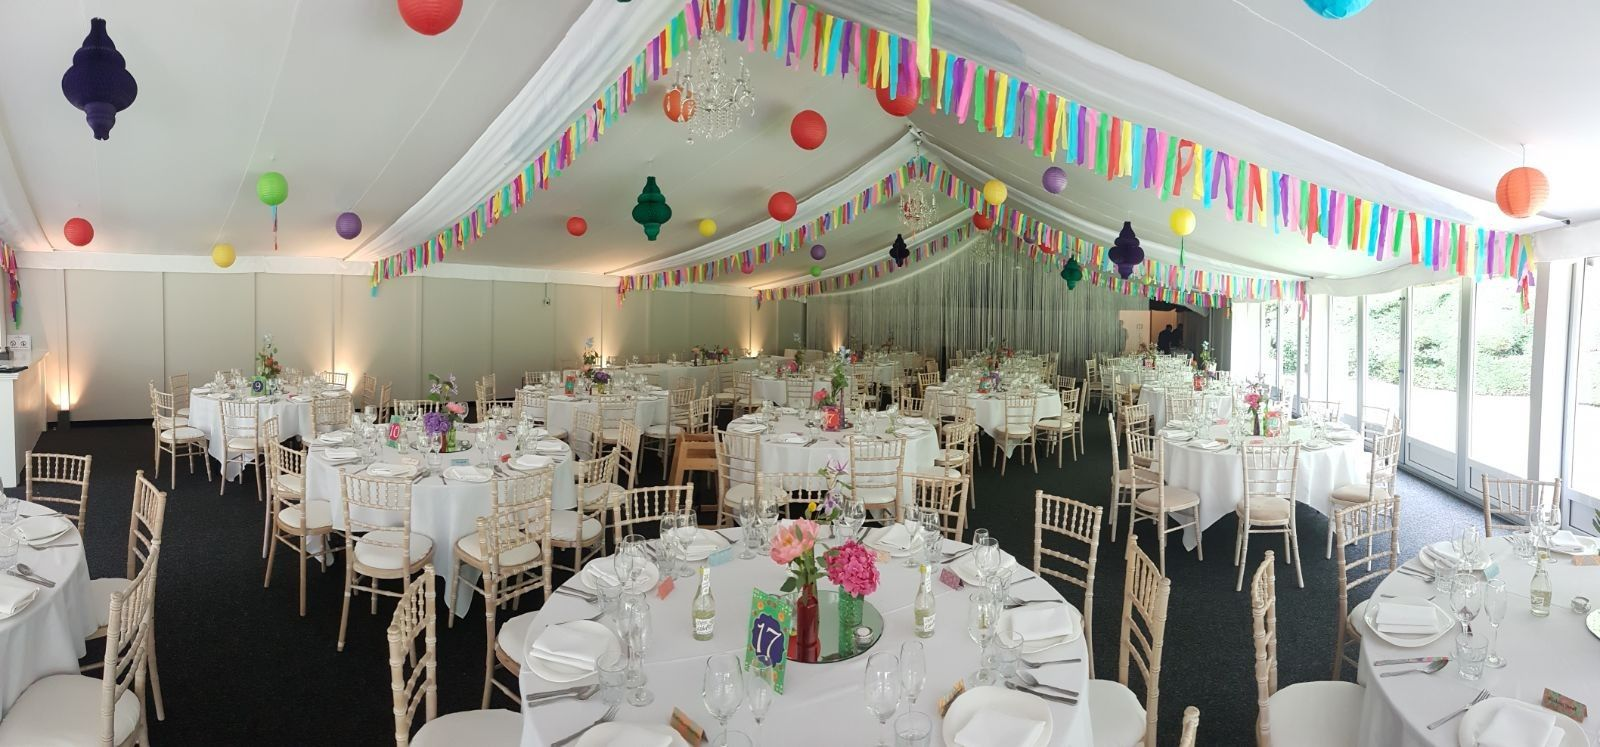 Paper lanterns wedding decoration ideas  Colourfull streamers as bunting hanging paper lanterns flowers in